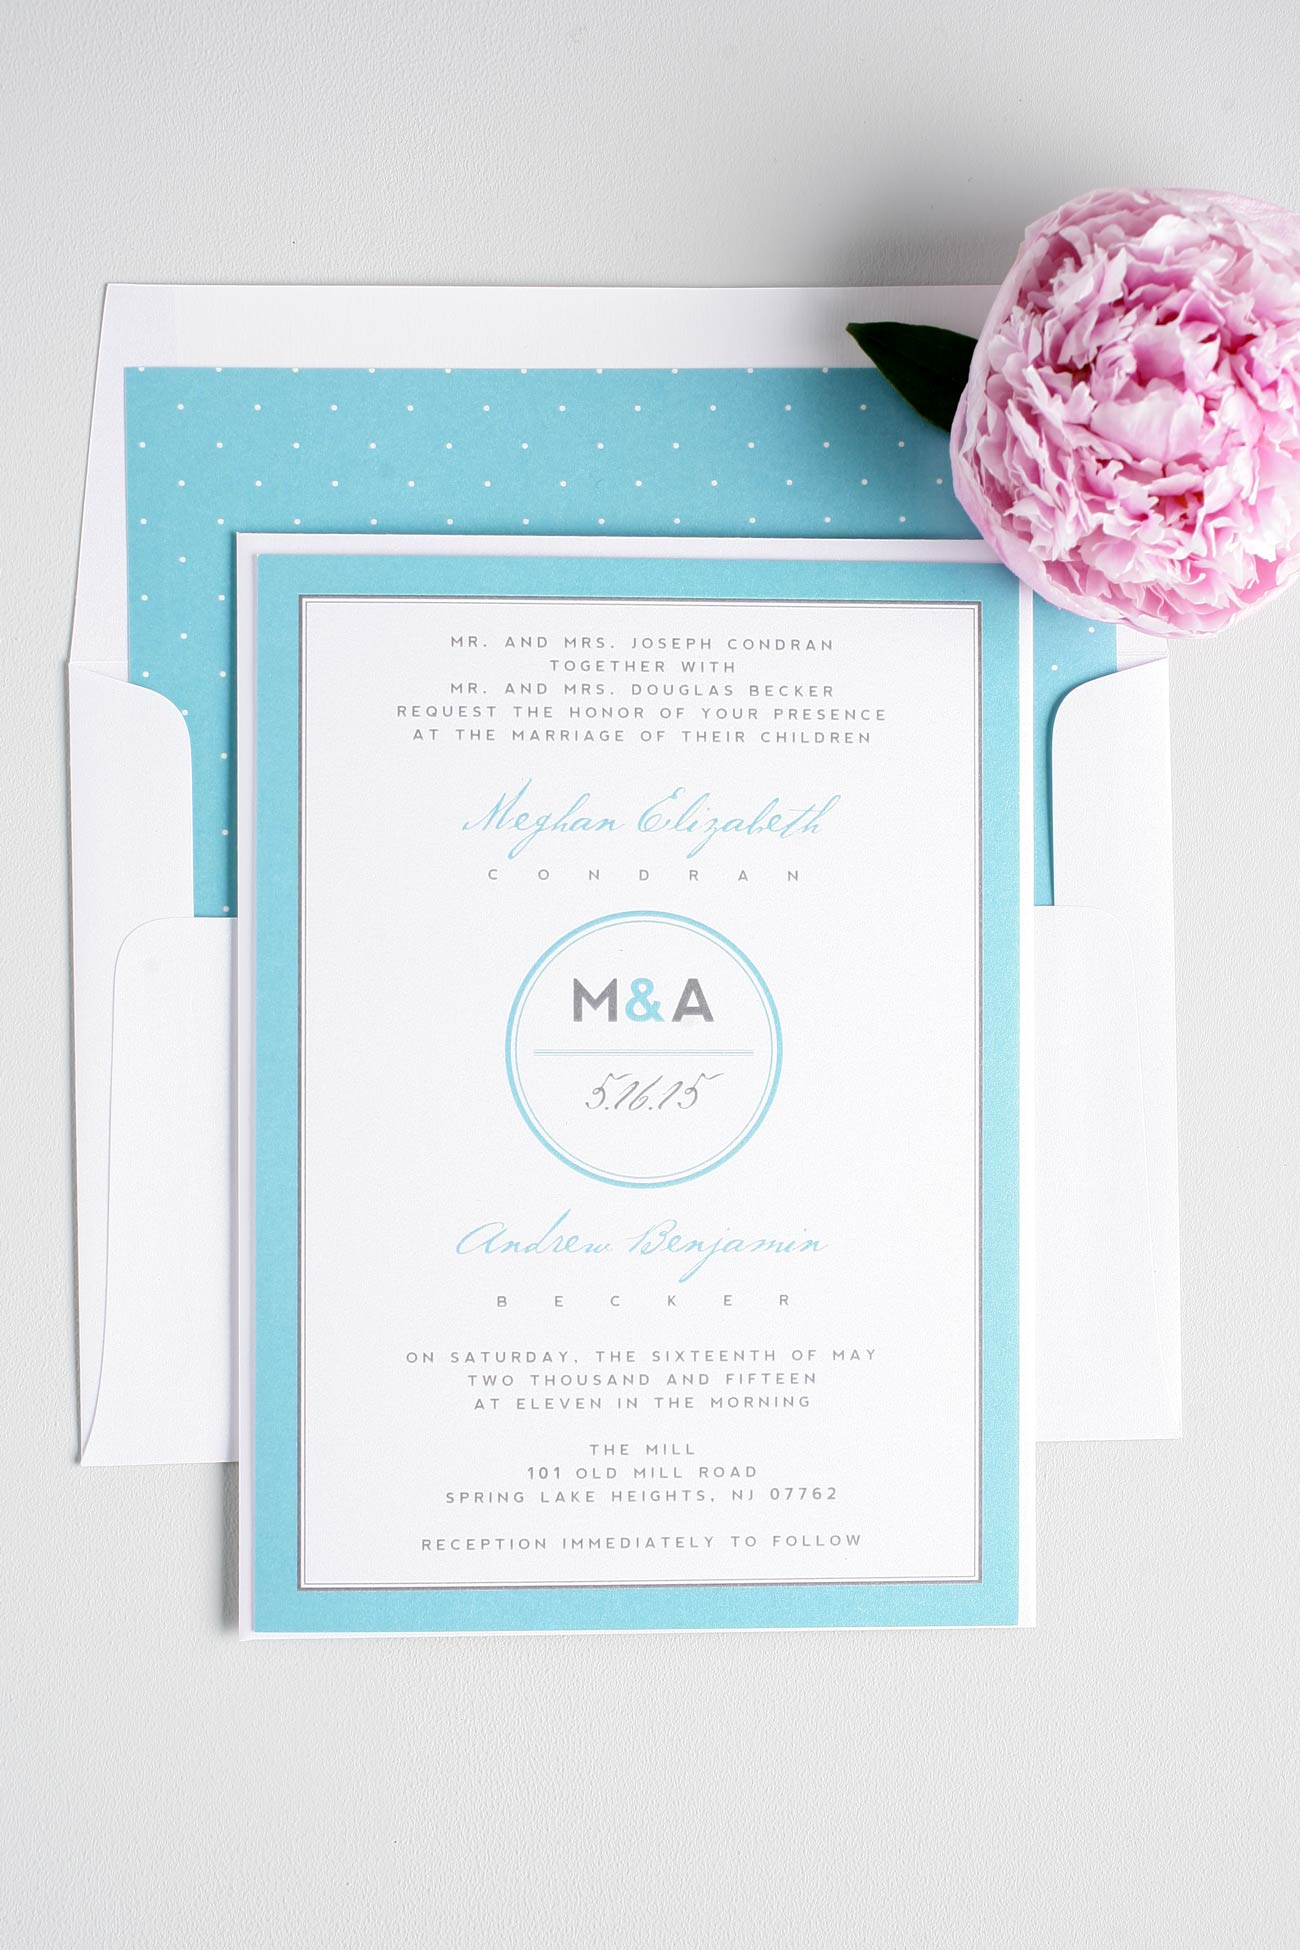 Modern monogram wedding invitations in blue with polka dots